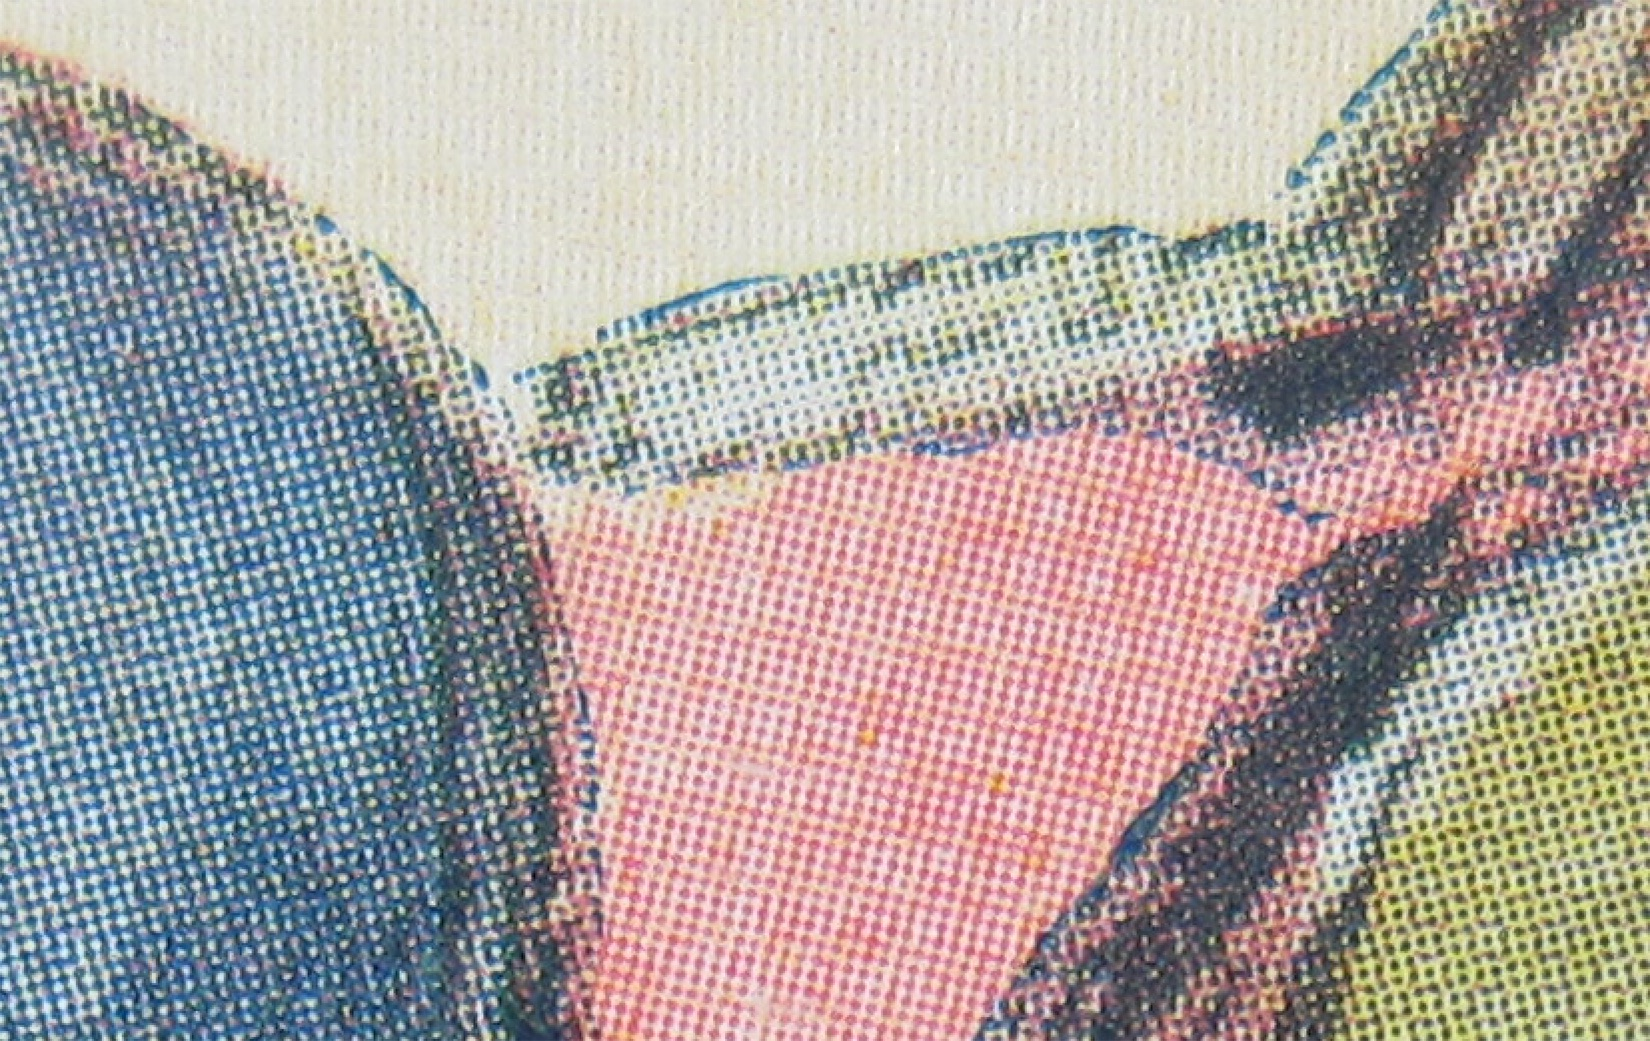 Magnification of halftone dots, showing slight mis-registration. Photo by the author from copy held in BAnQ, Montreal.